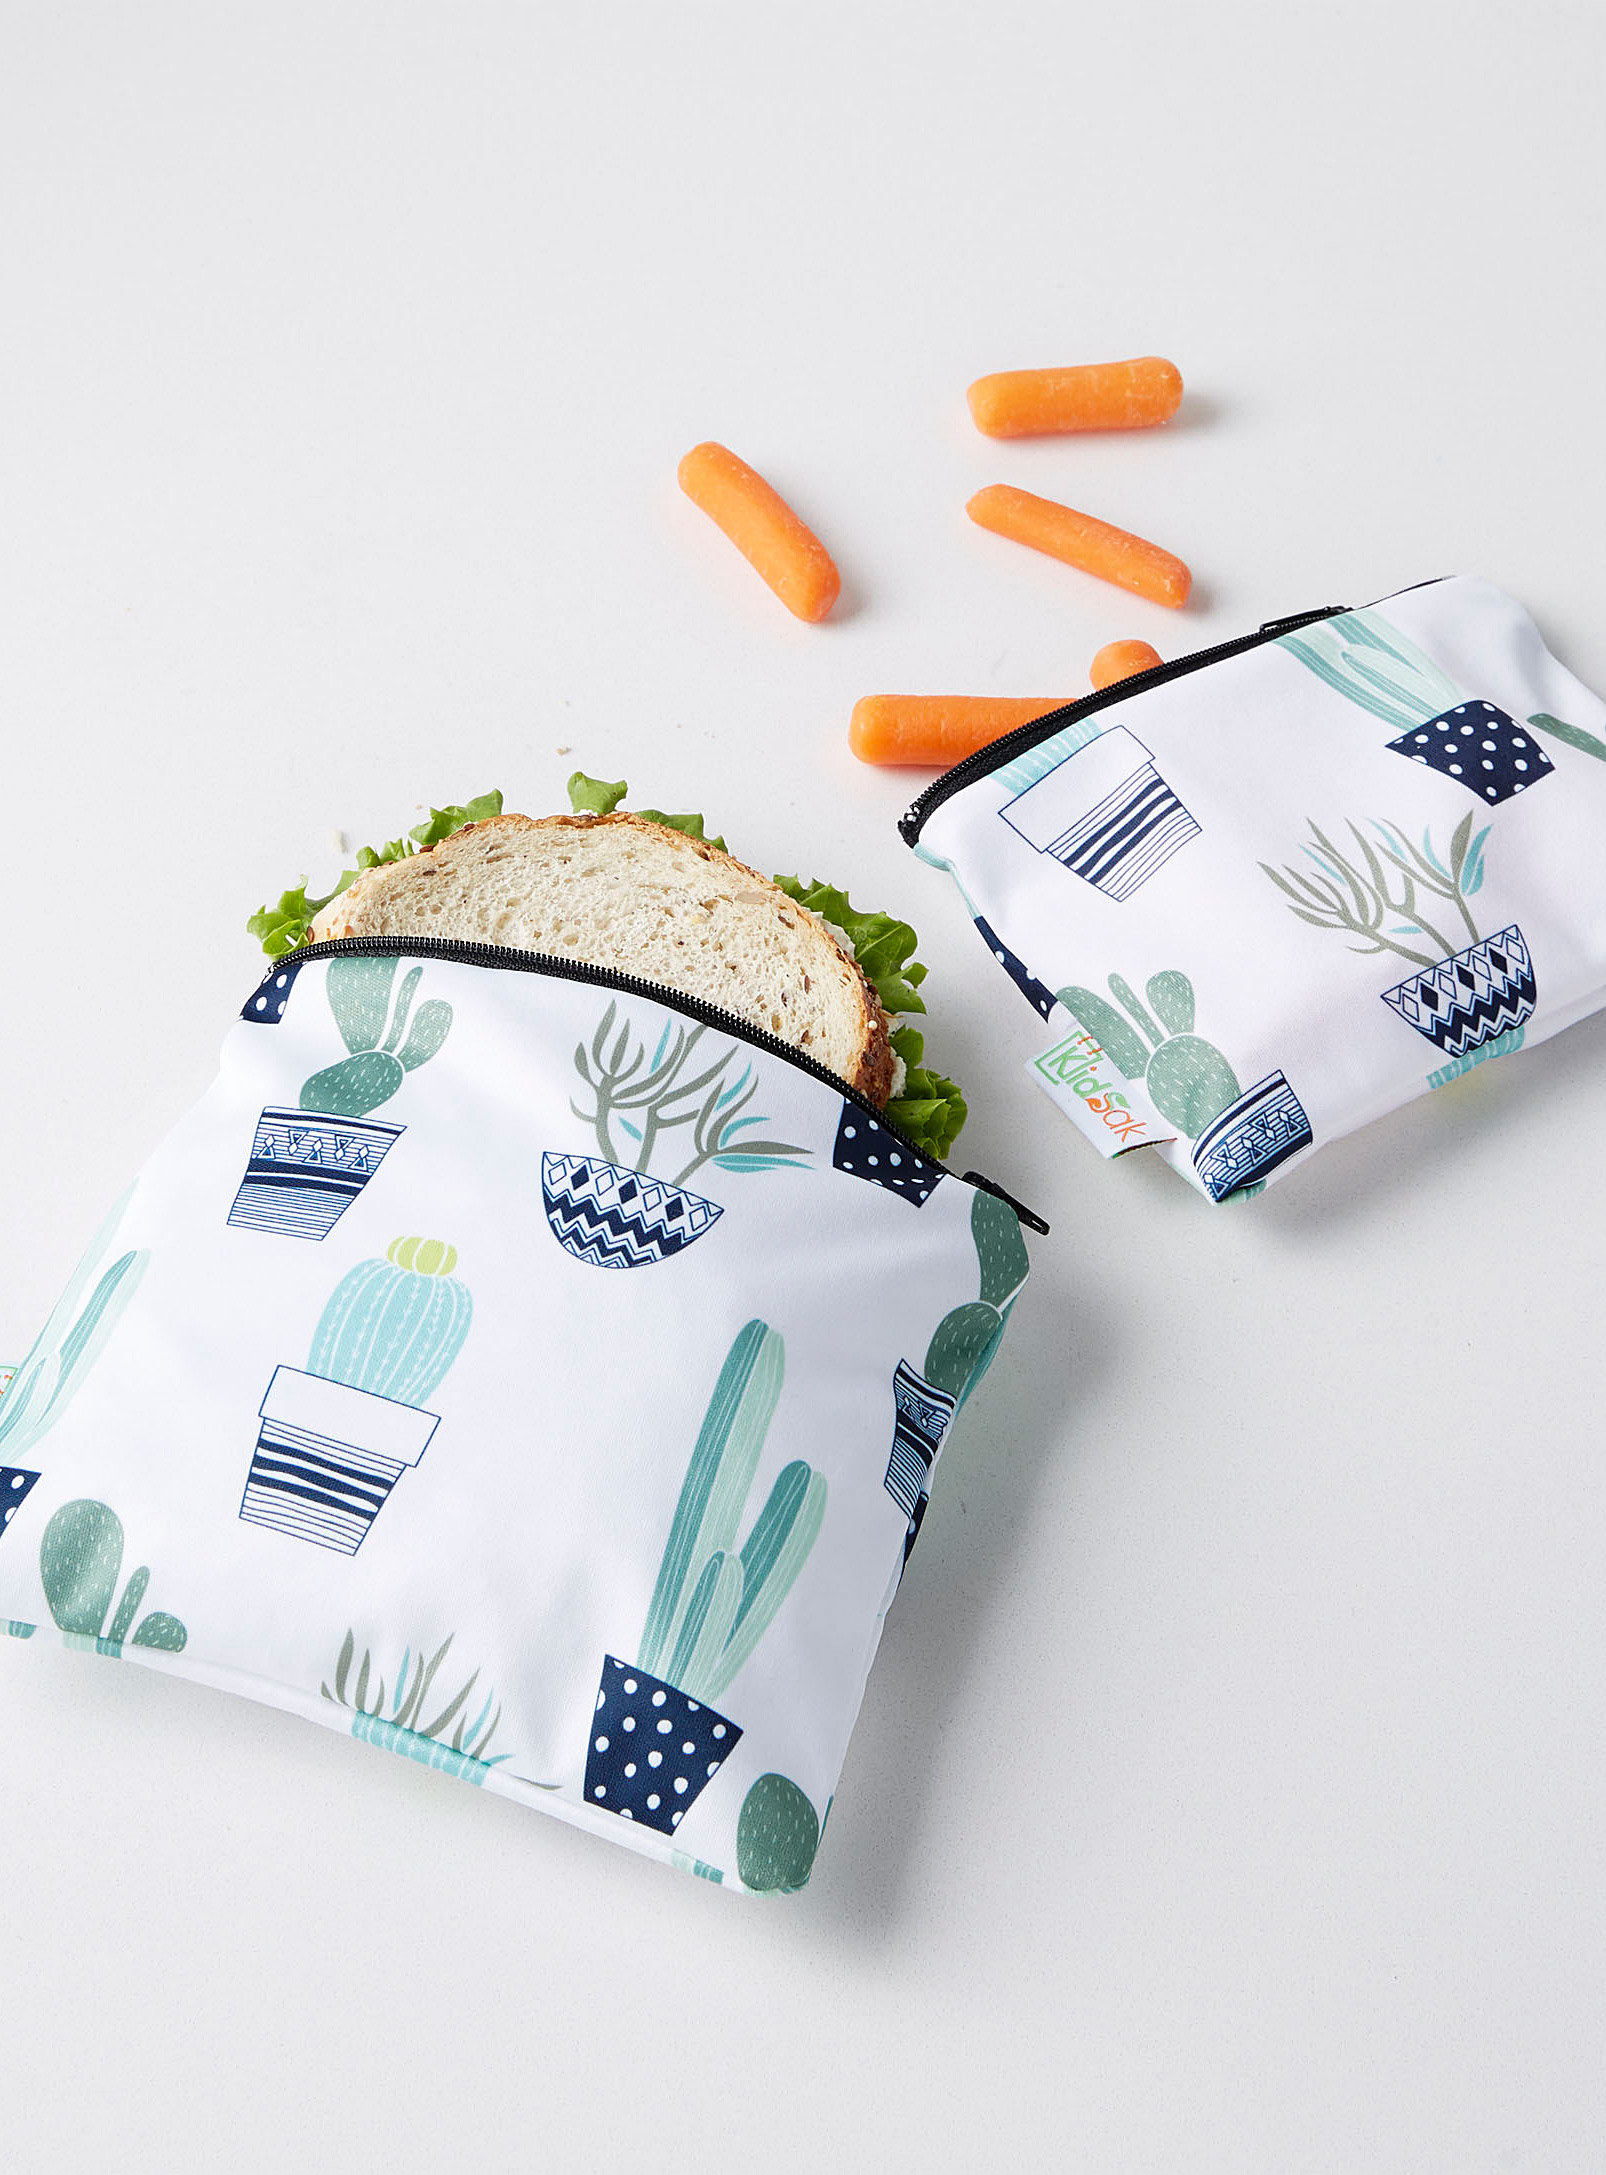 the cactus printed bags with a sandwich and carrot sticks inside them